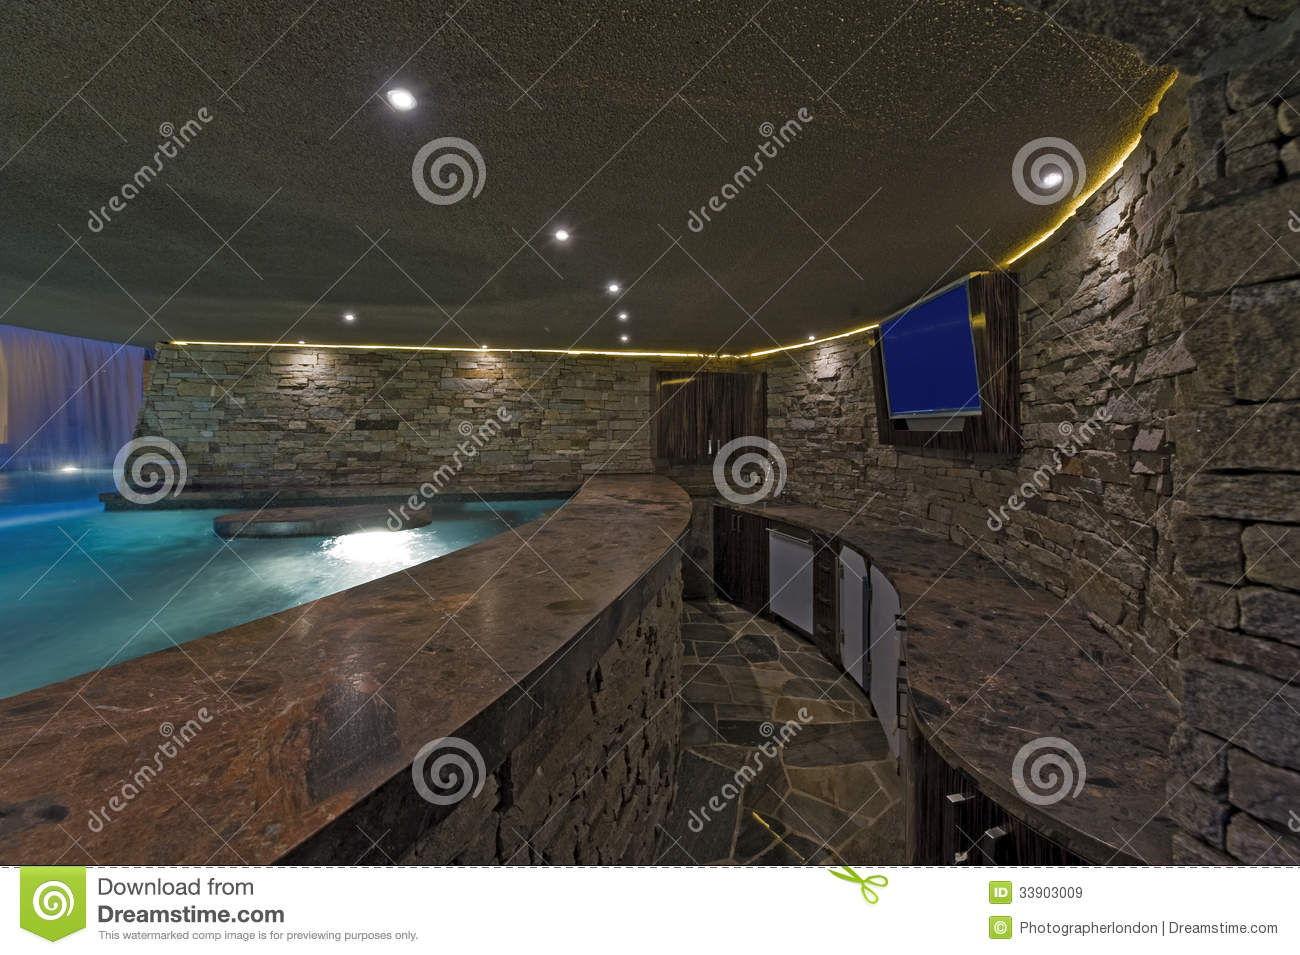 piscine avec la tv sur le mur en pierre image stock image du waterfall personne 33903009. Black Bedroom Furniture Sets. Home Design Ideas